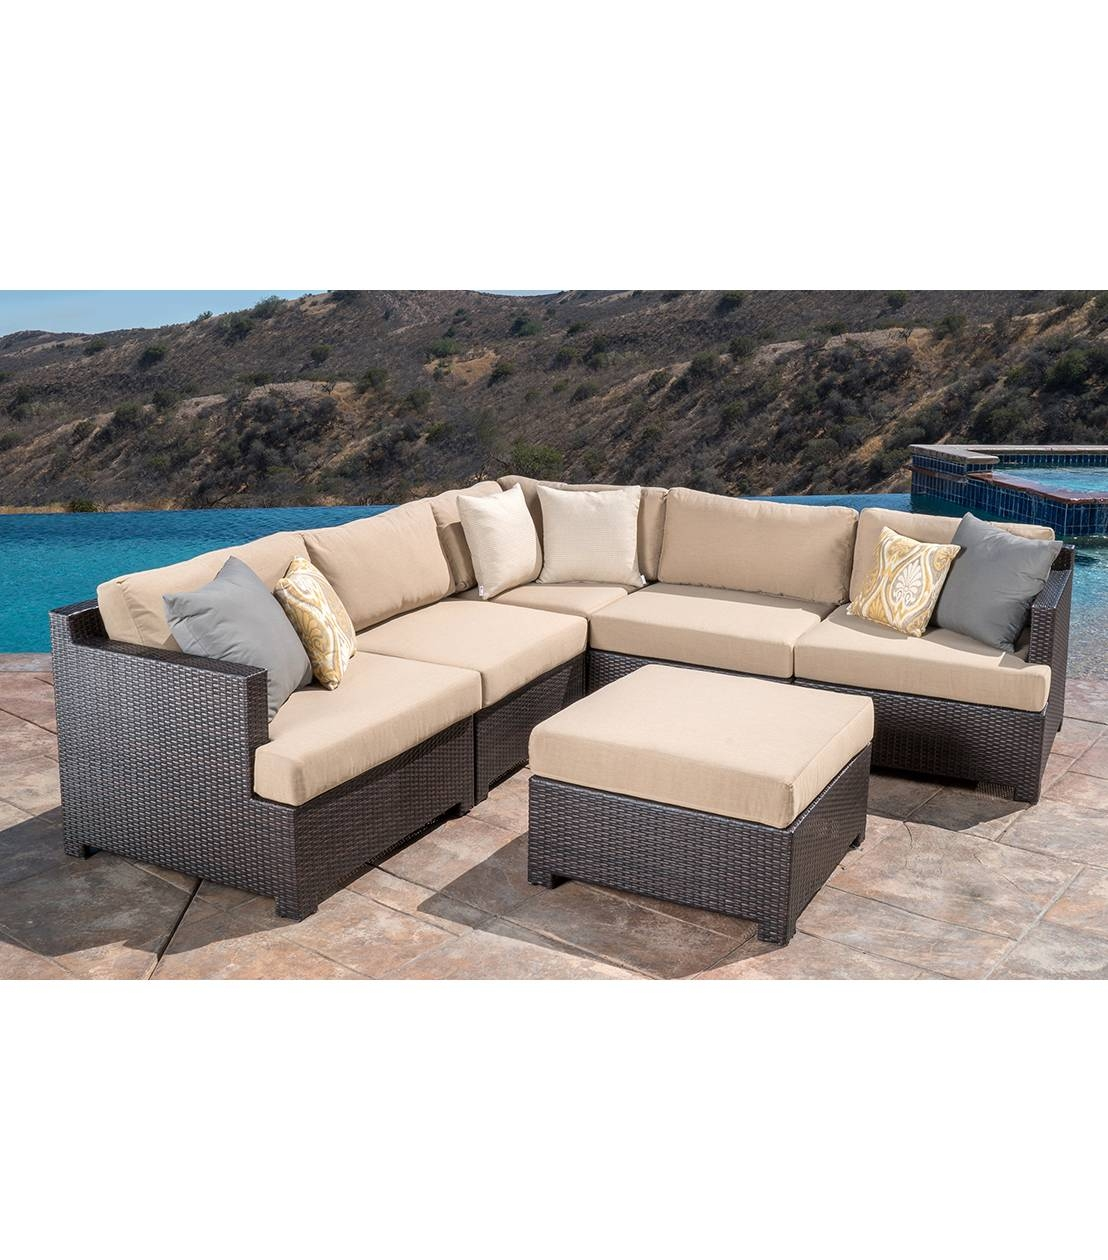 Interesting 6 Piece Modular Sectional Sofa 73 For American Made within American Made Sectional Sofas (Image 15 of 30)